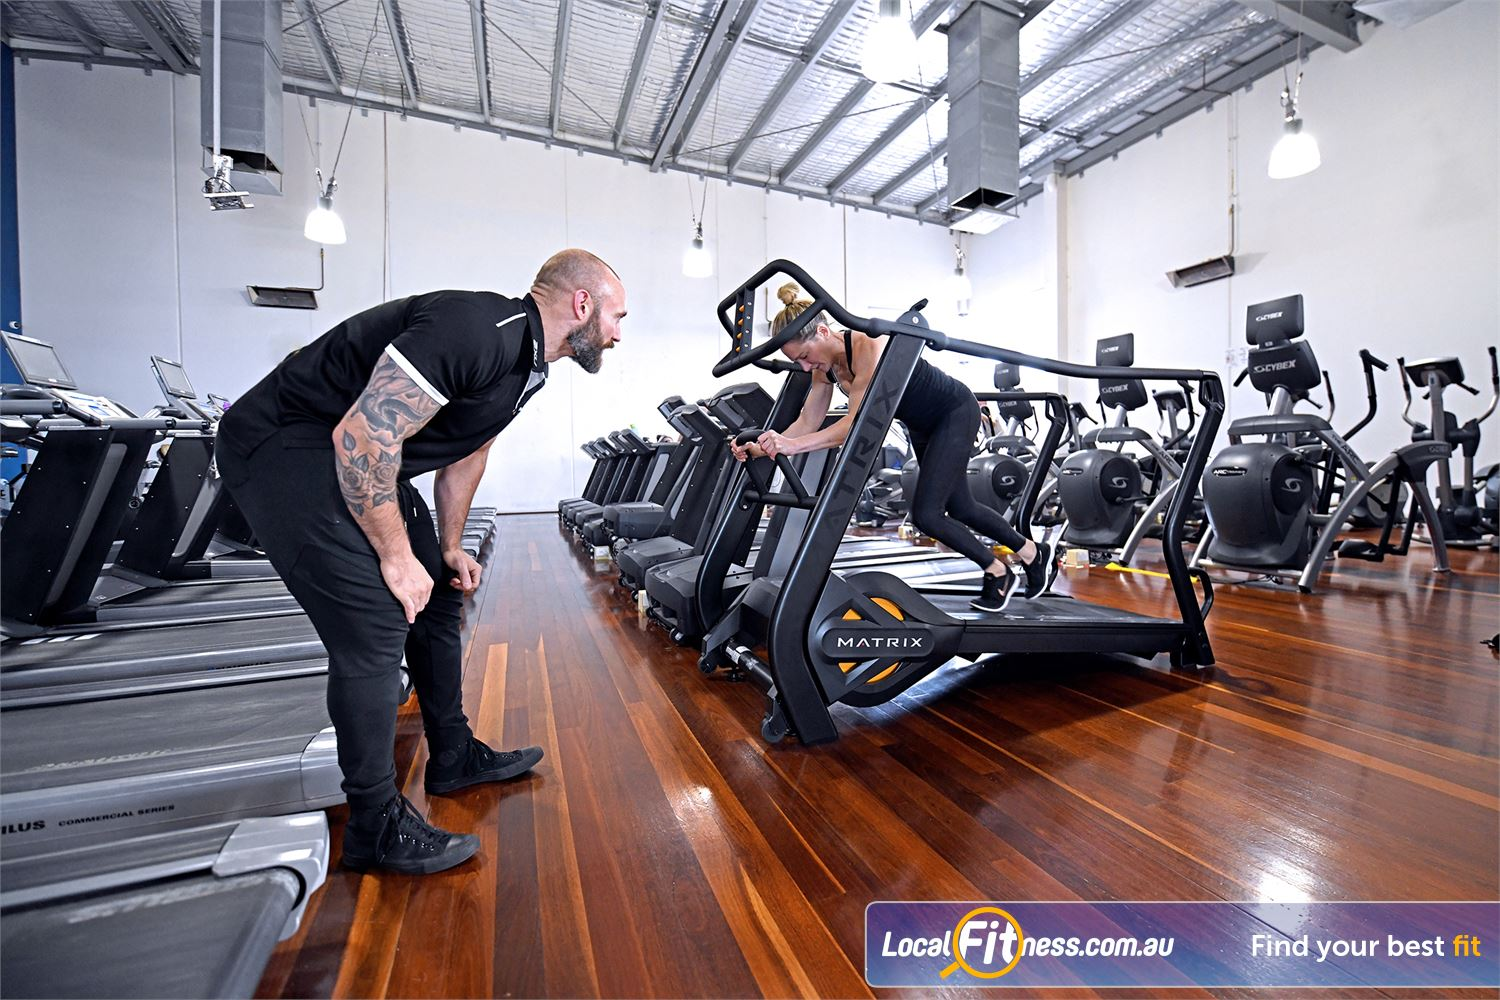 Goodlife Health Clubs Near Moolap Our cardio area includes the MATRIX S-drive performance to simulate sled running.